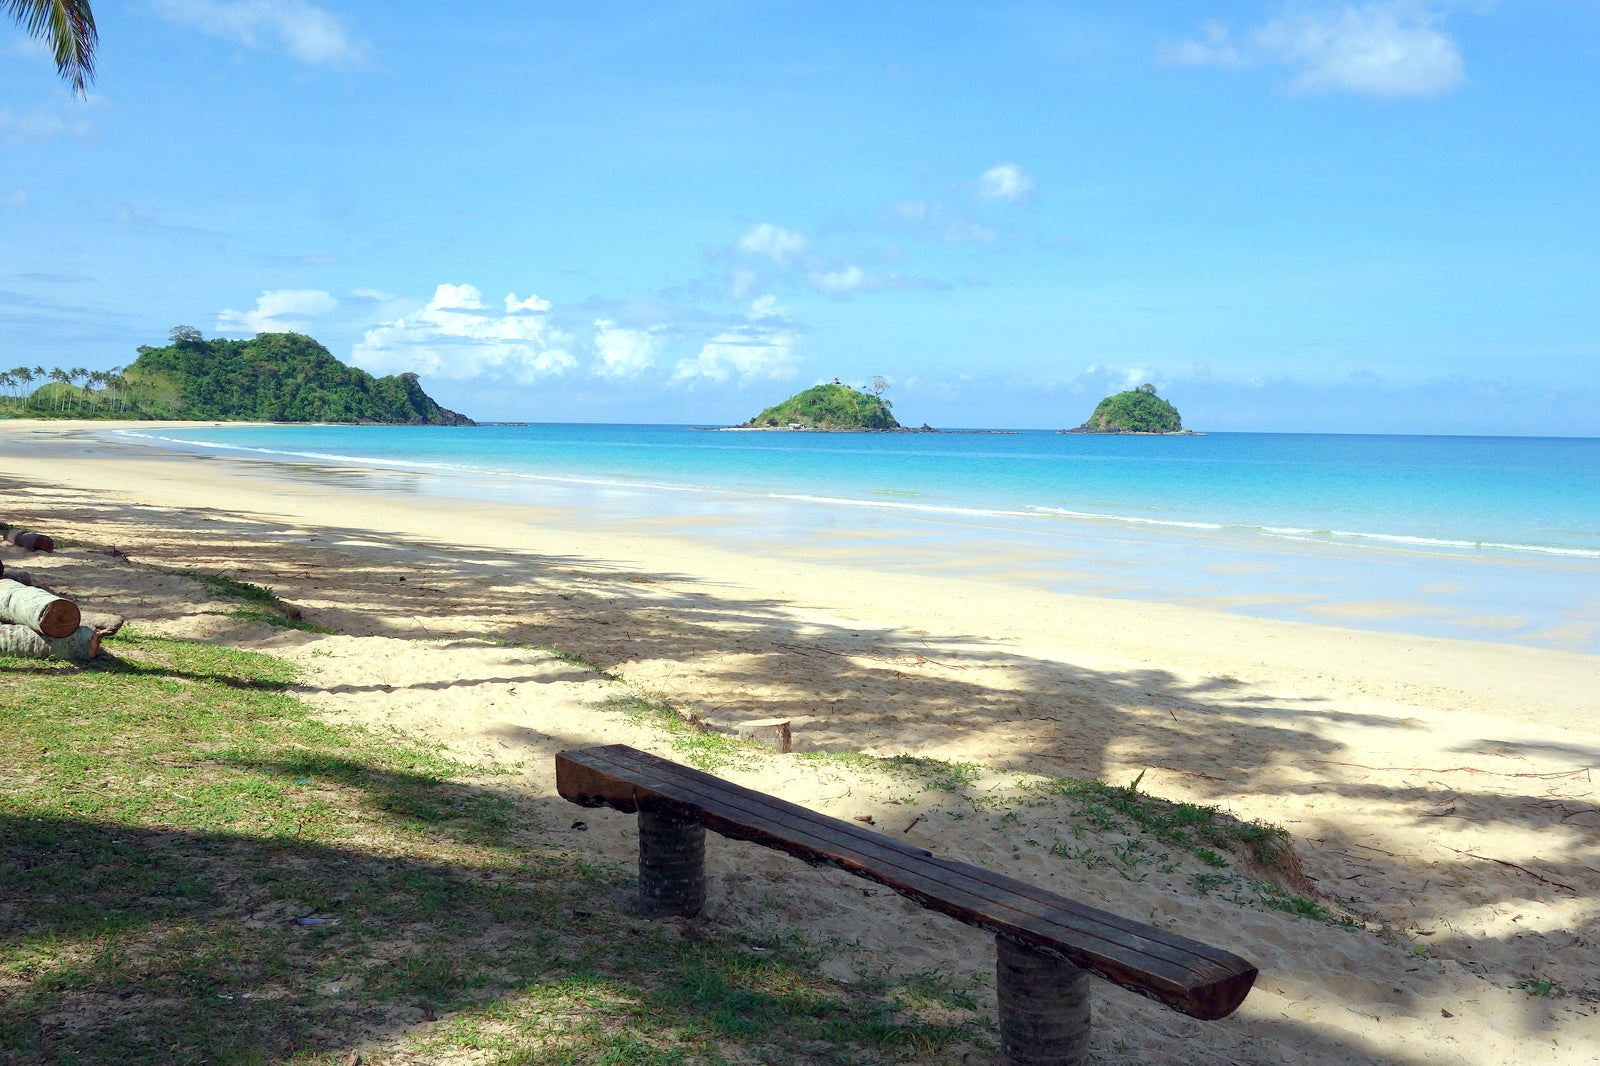 14 Best Things to Do in Palawan - What is Palawan Most